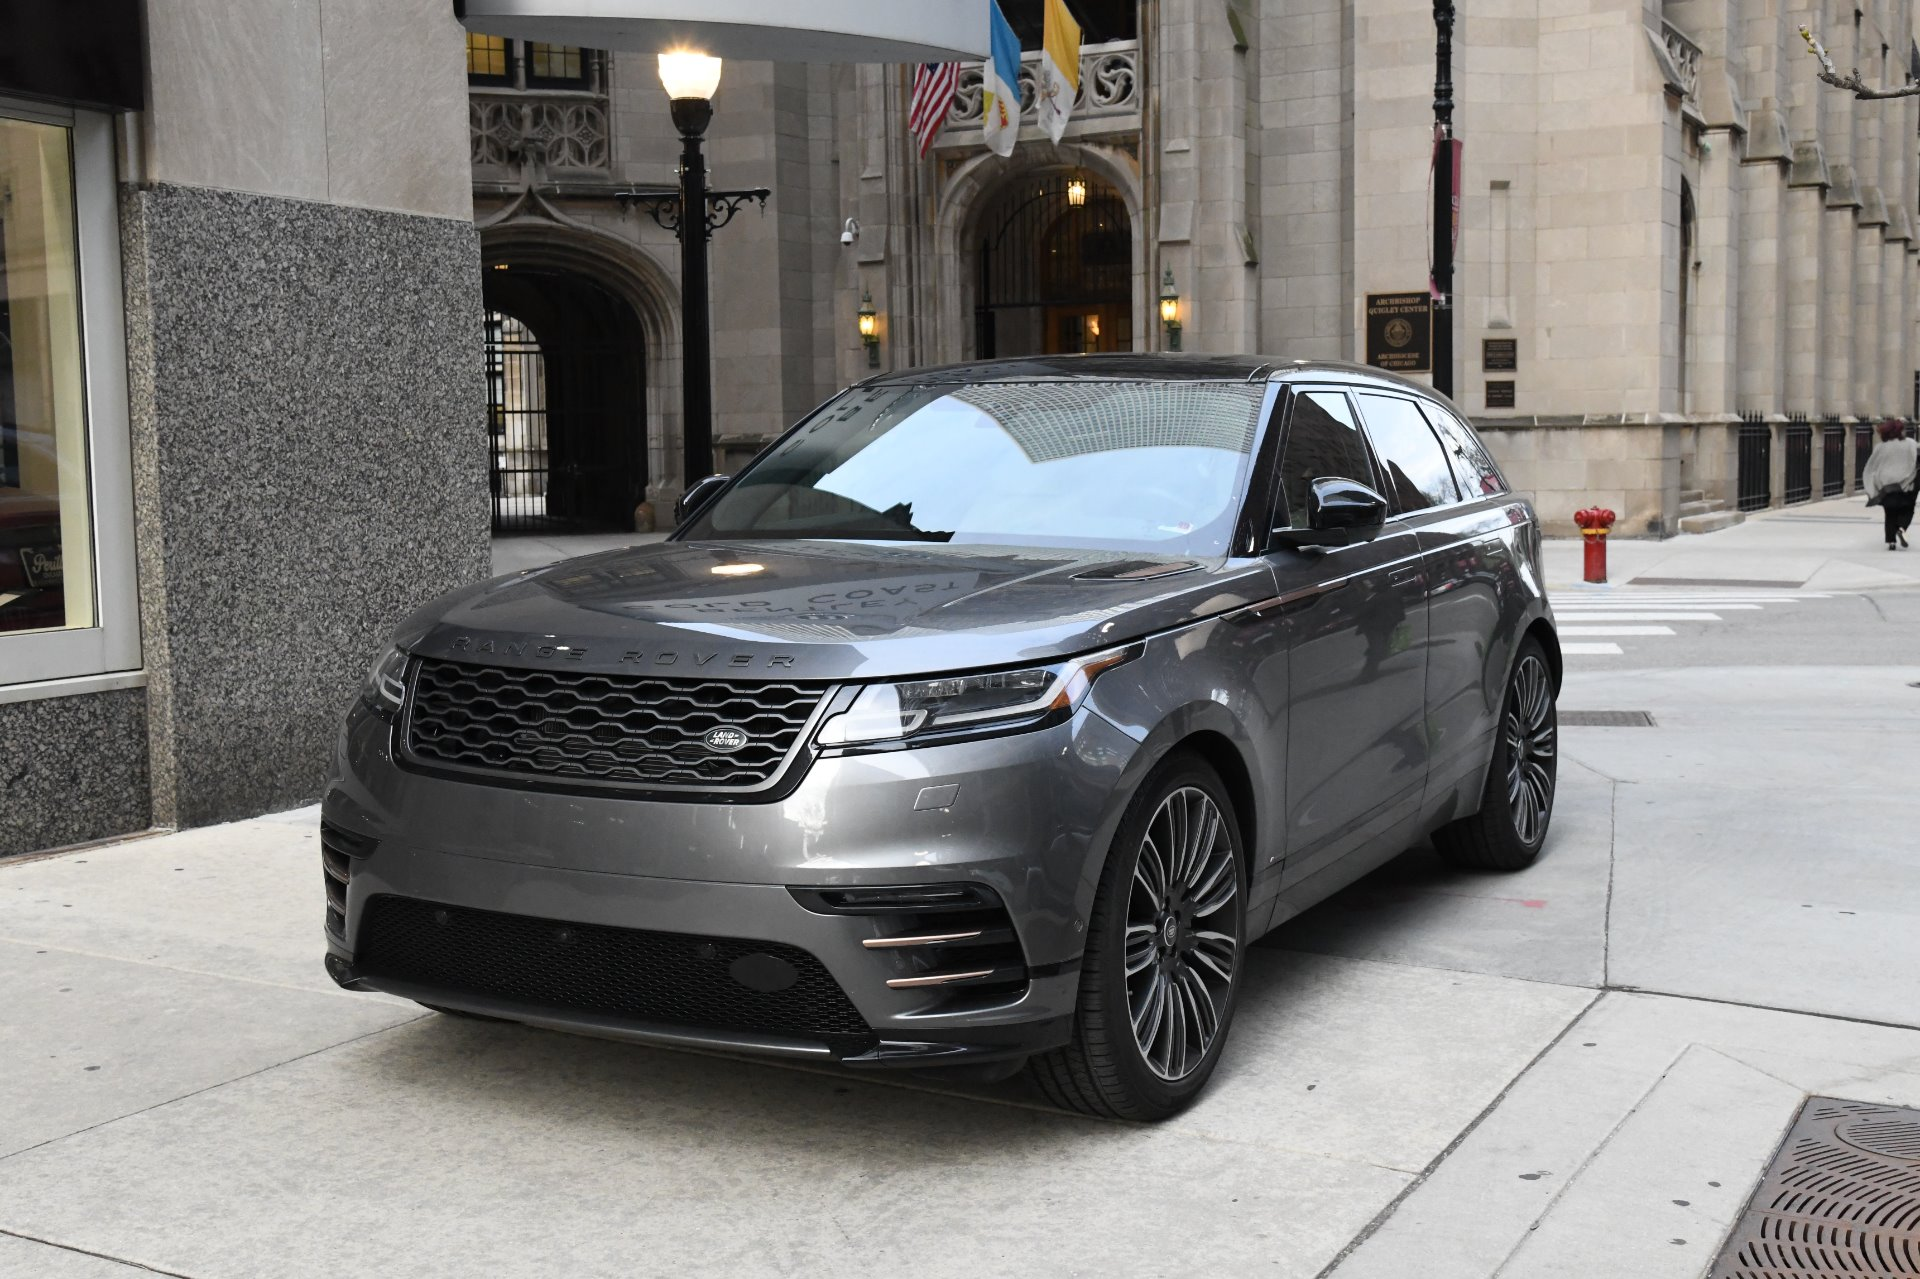 Used 2018 Land Rover Range Rover Velar P380 First Edition | Chicago, IL